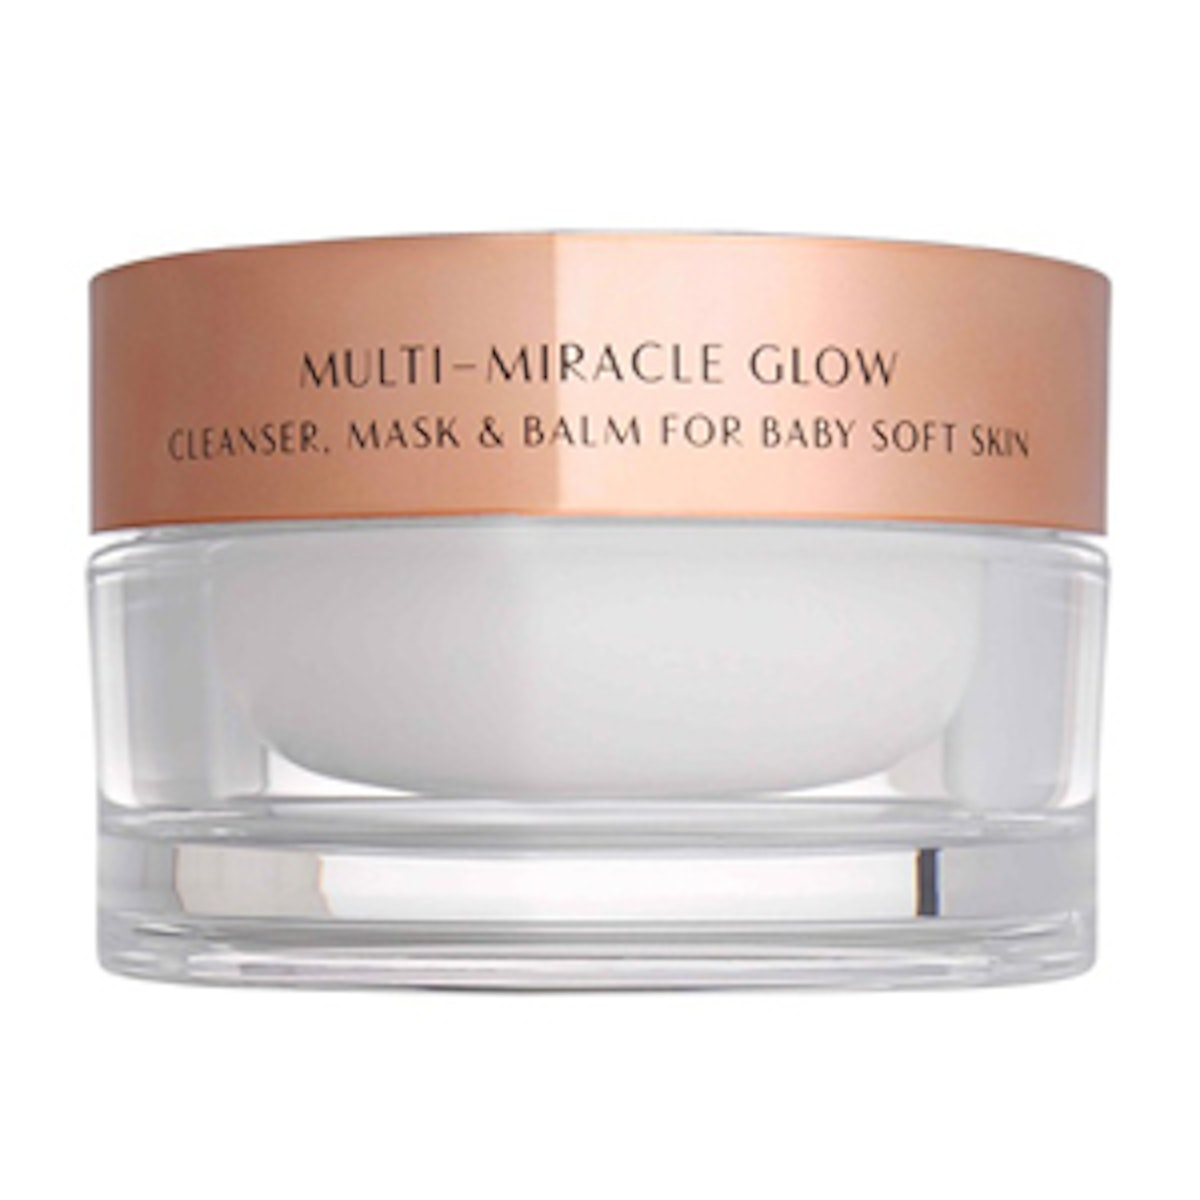 Multi-Miracle Glow Cleanser, Mask & Balm